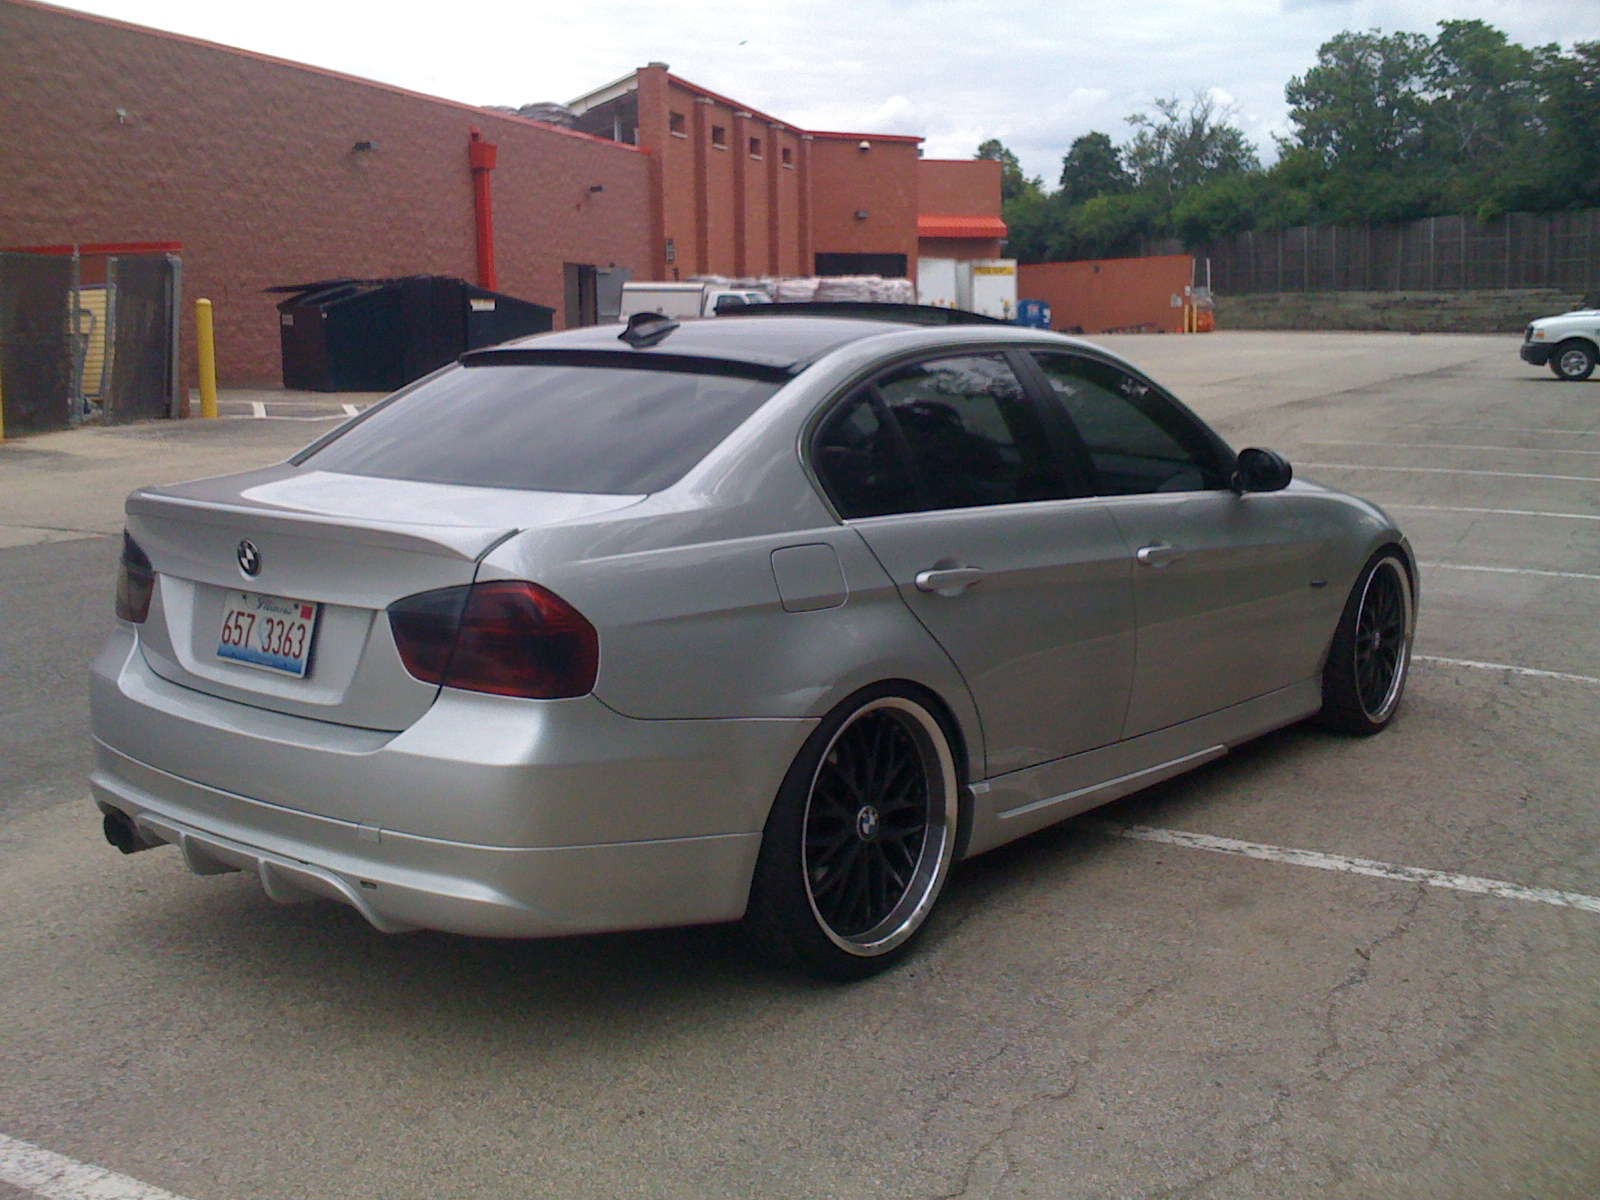 19 or 20 inch rims 335i sedan name img0066g views 71350 size 4000 kb sciox Image collections